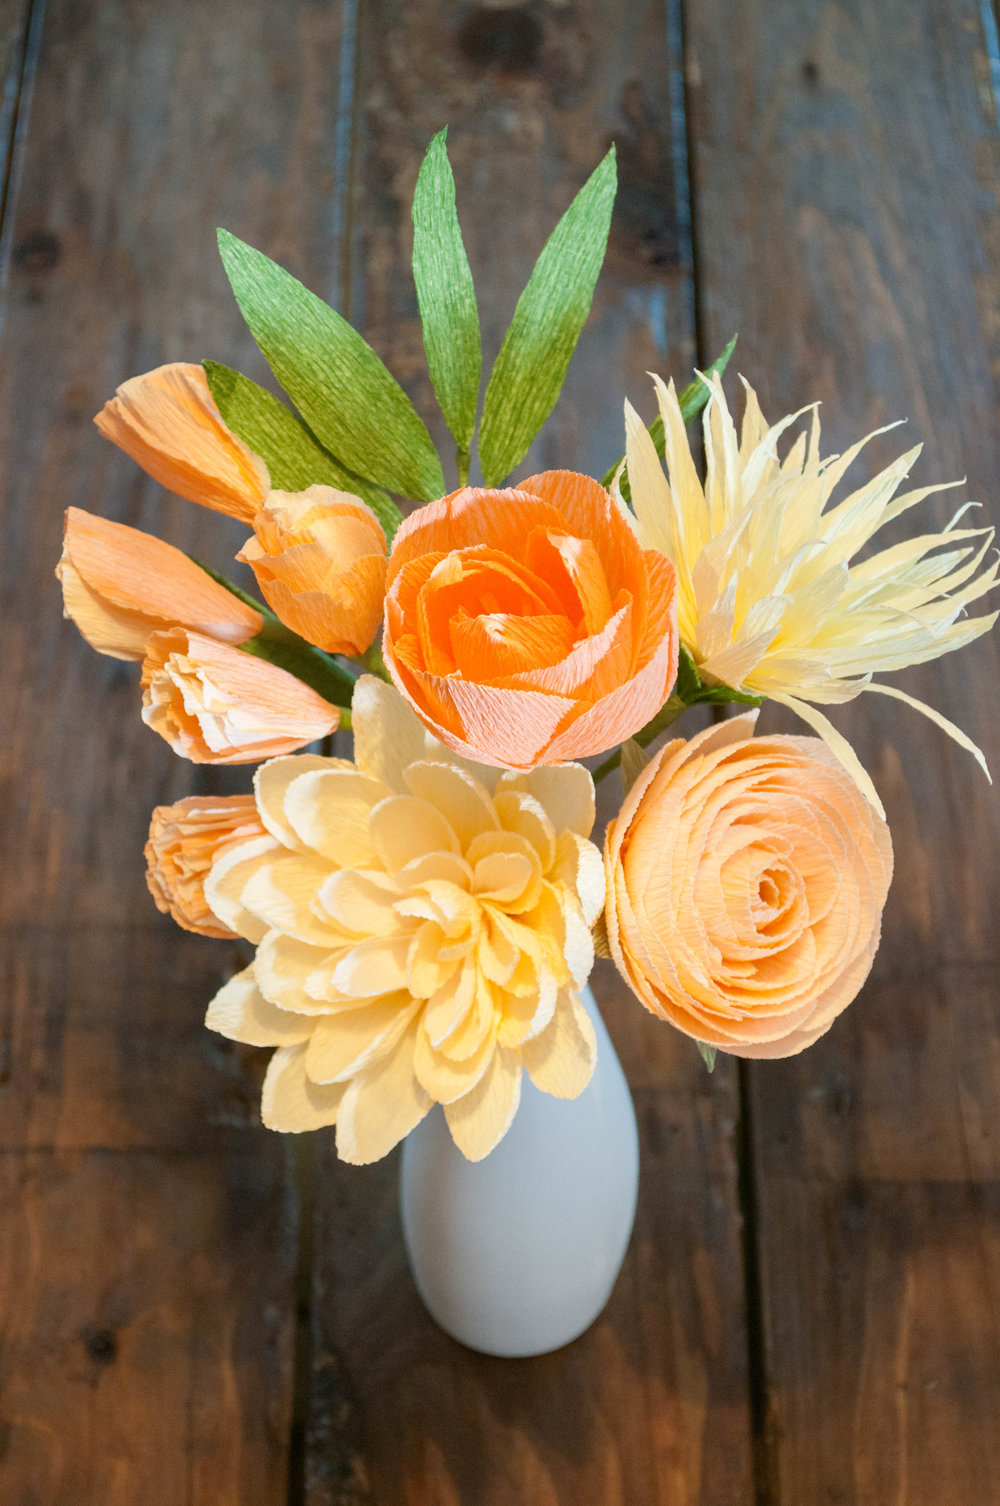 Build this 6-stem bouquet! Recipe: French vanilla dahlia, peach tulip, peach ranunculus, yellow water lily, peach sweet pea, grass green leaves.